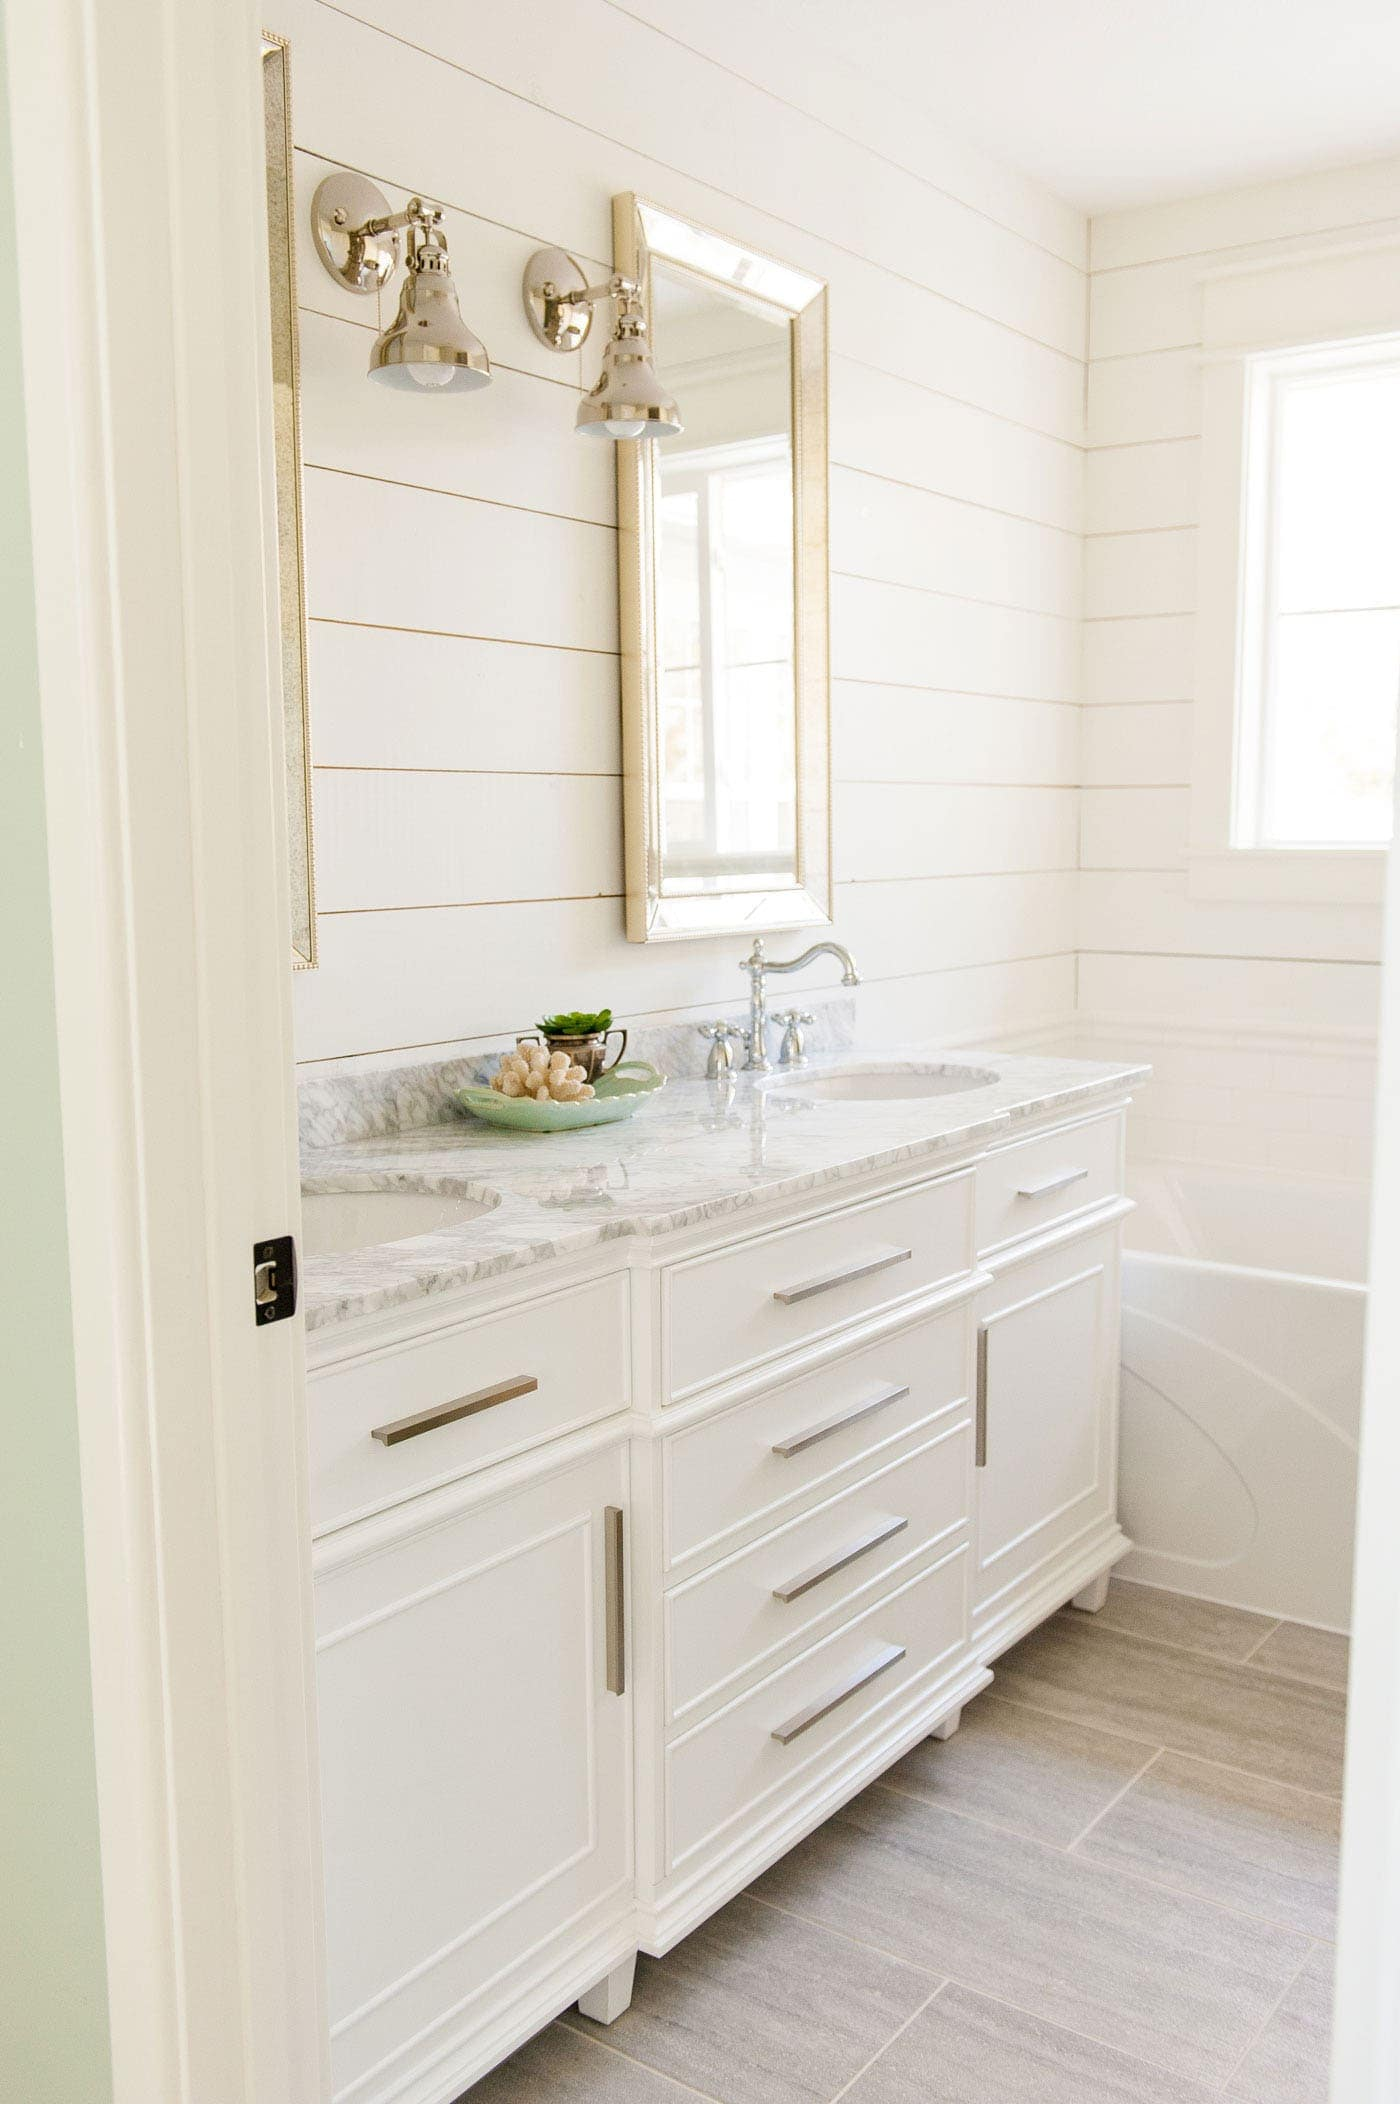 gorgeous vanity available from AMAZON. Click to find out all the details | bathroom vanity ideas | double sink vanities | bathroom renovation | bathroom remodel | farmhouse bathroom | master bath remodel #bathroomdecor #bathroomidea #bathroomdesigns